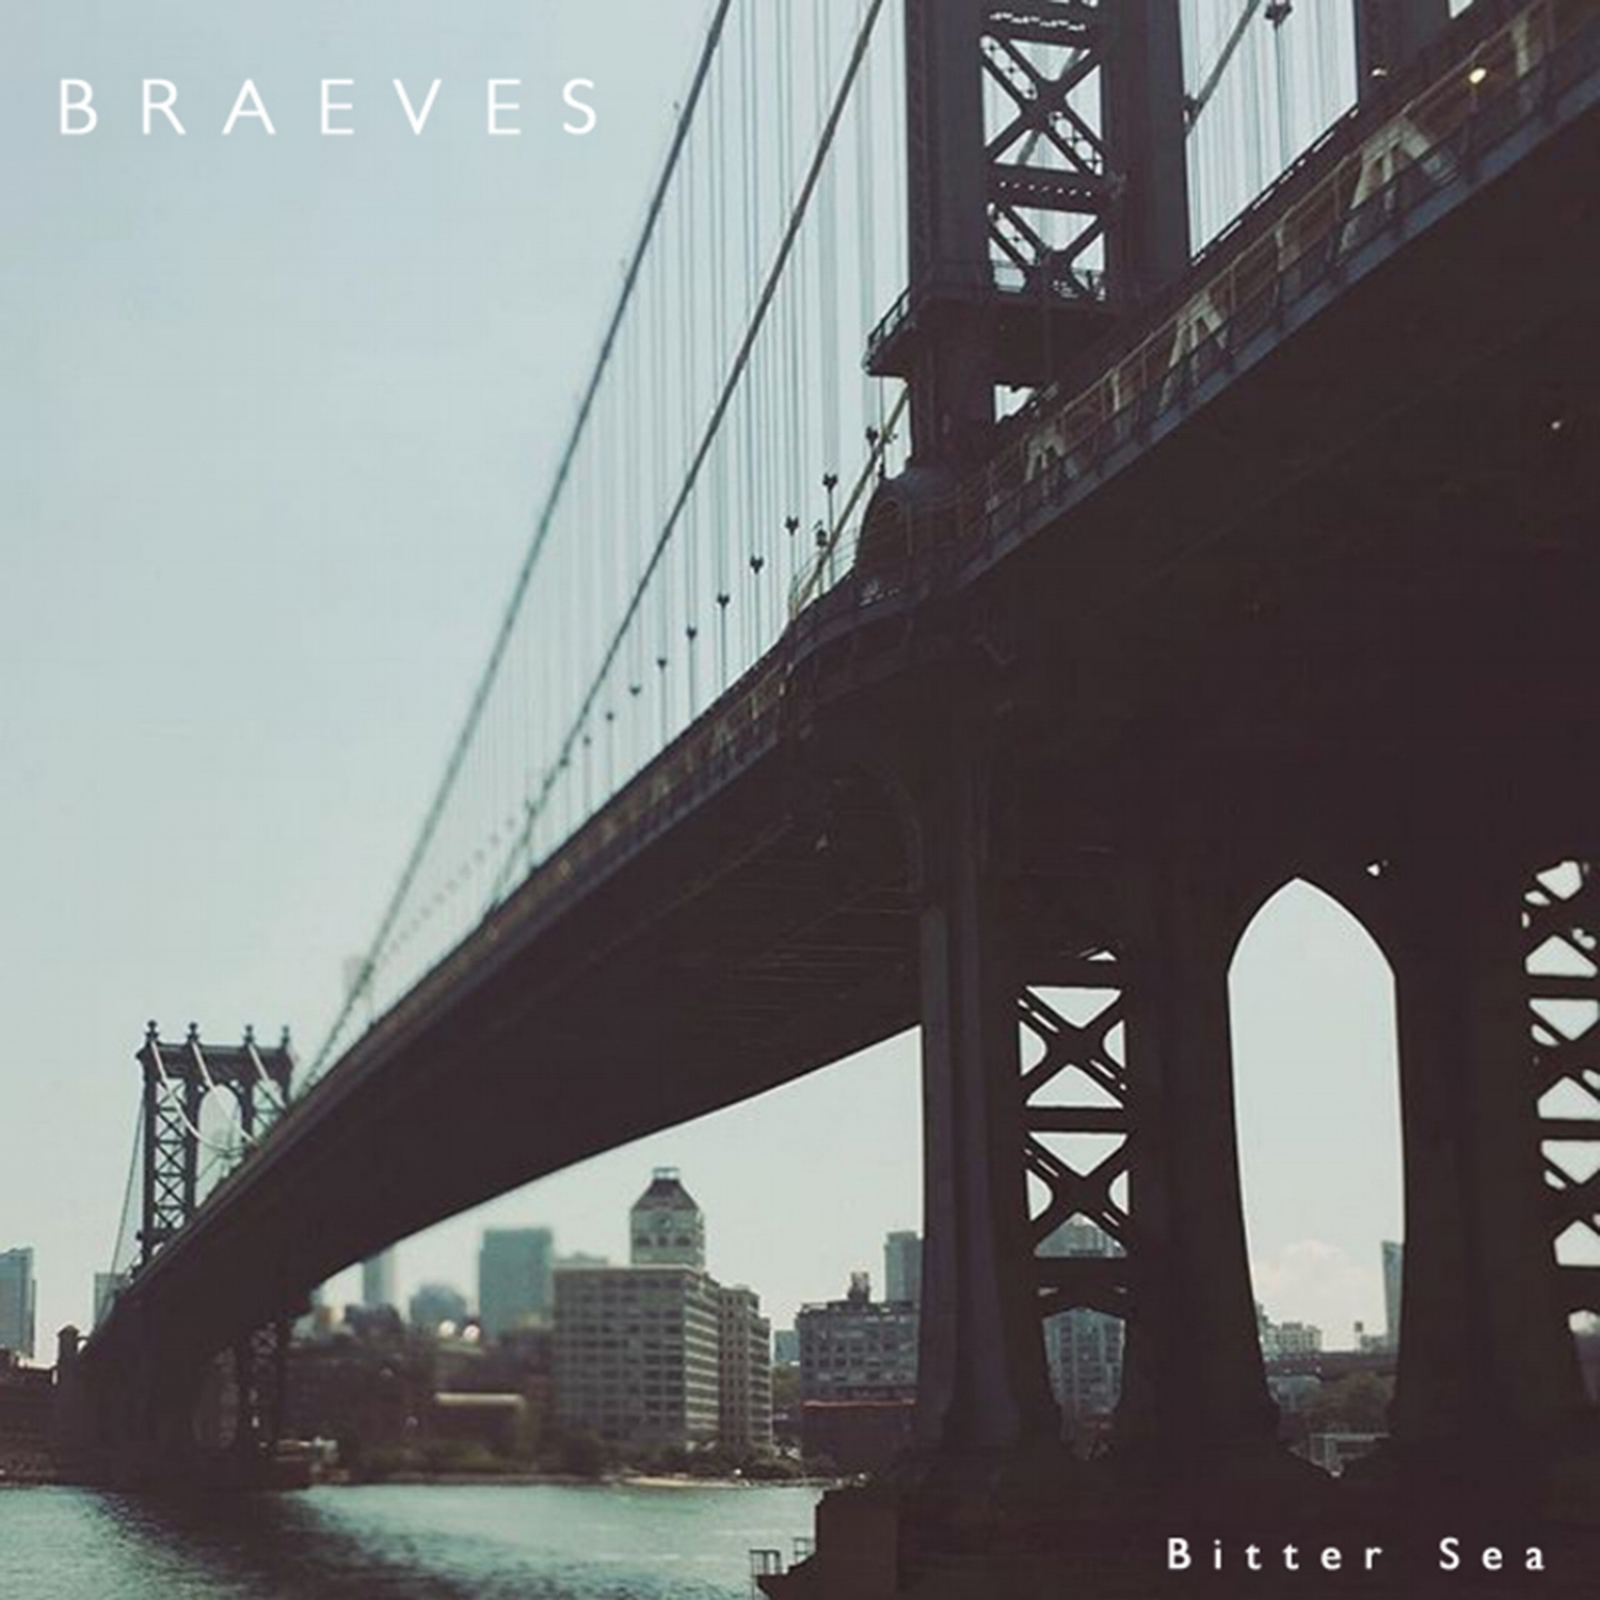 Bitter Sea -Single    Released 6/10/16 Recorded by Raymond Richards (Local Natives) Additional Production and Mixing by Dave Trumfio (Wilco, Built to Spill, Snowmine) Mastered by Howie Weinberg Written and Produced by BRAEVES Photography by Danielle Guelbart    Play on Apple Music: apple.co/2JnBaog